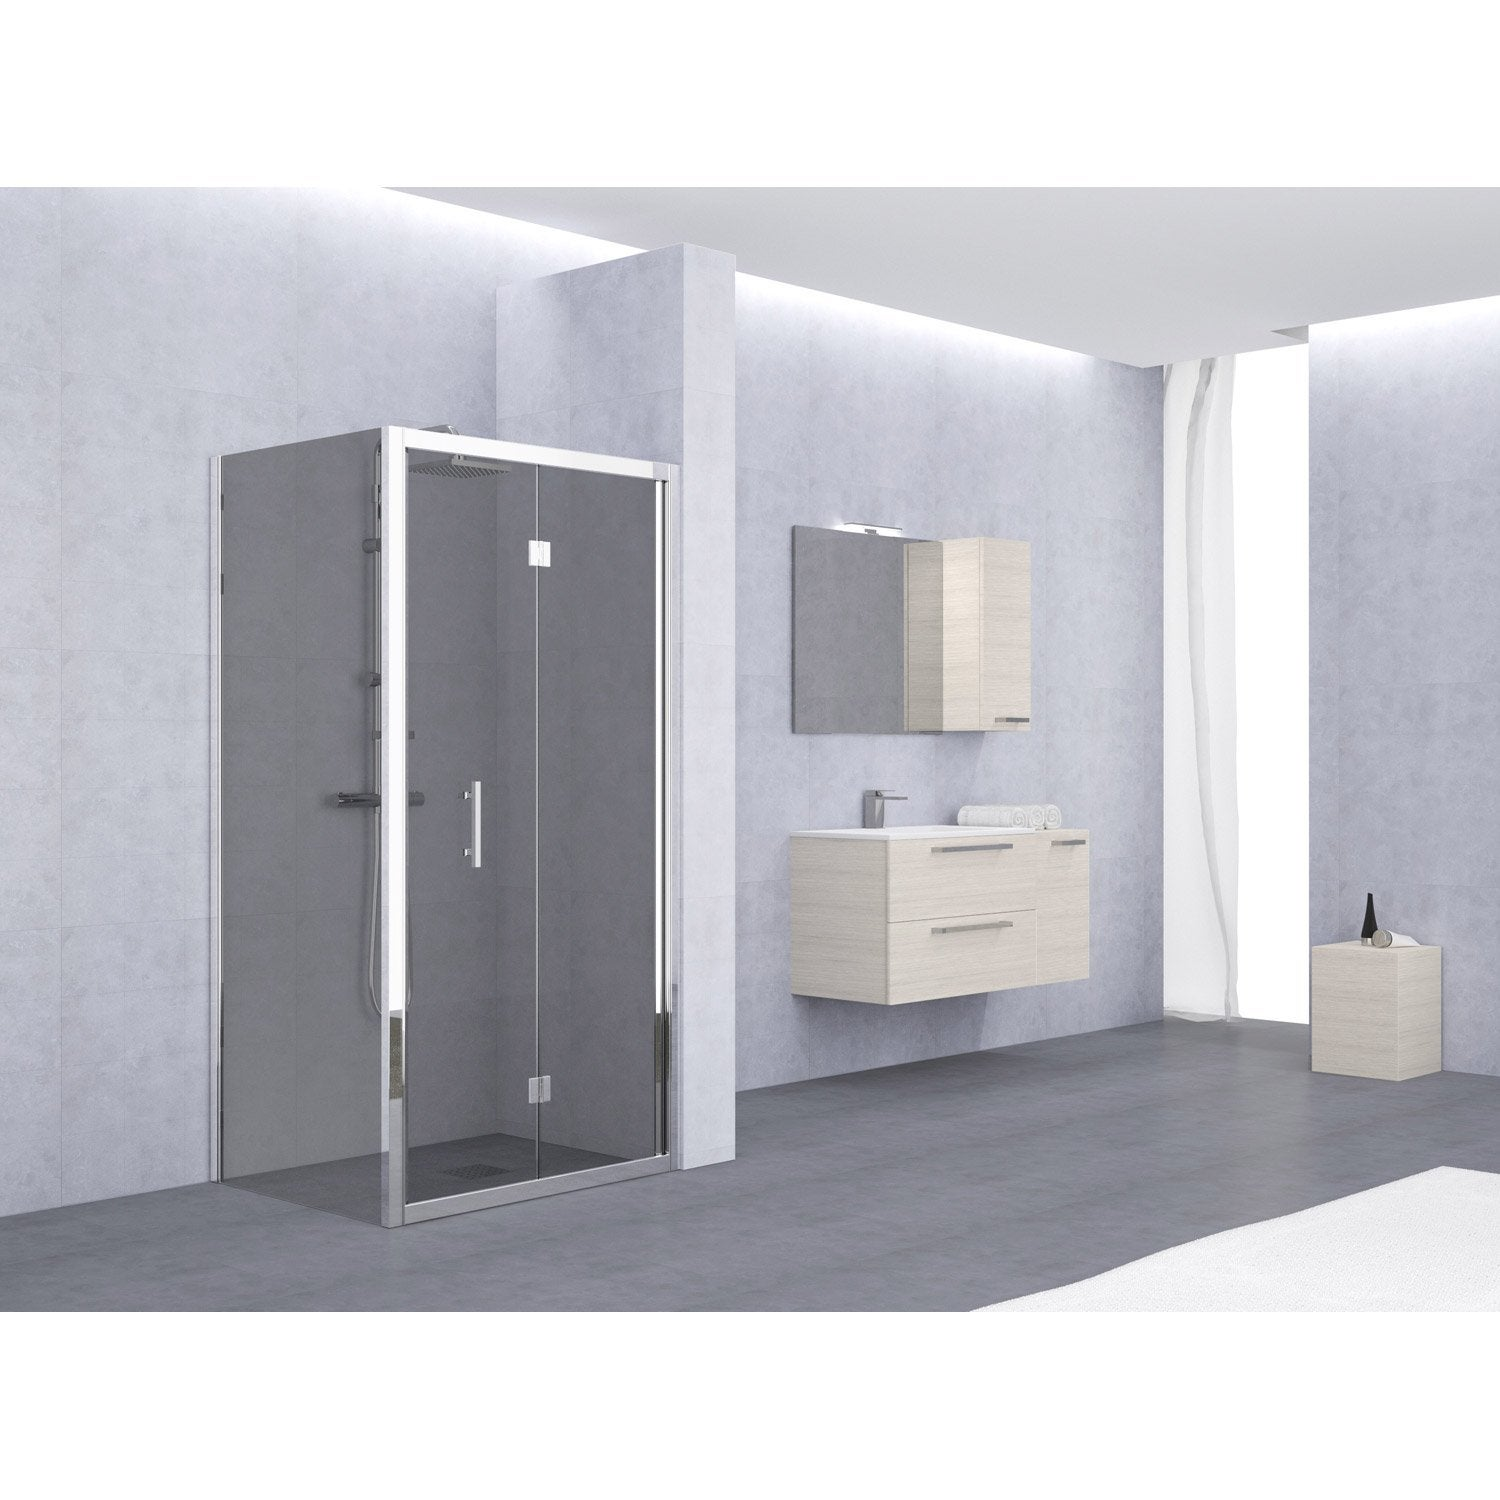 porte de douche pliante elyt leroy merlin. Black Bedroom Furniture Sets. Home Design Ideas